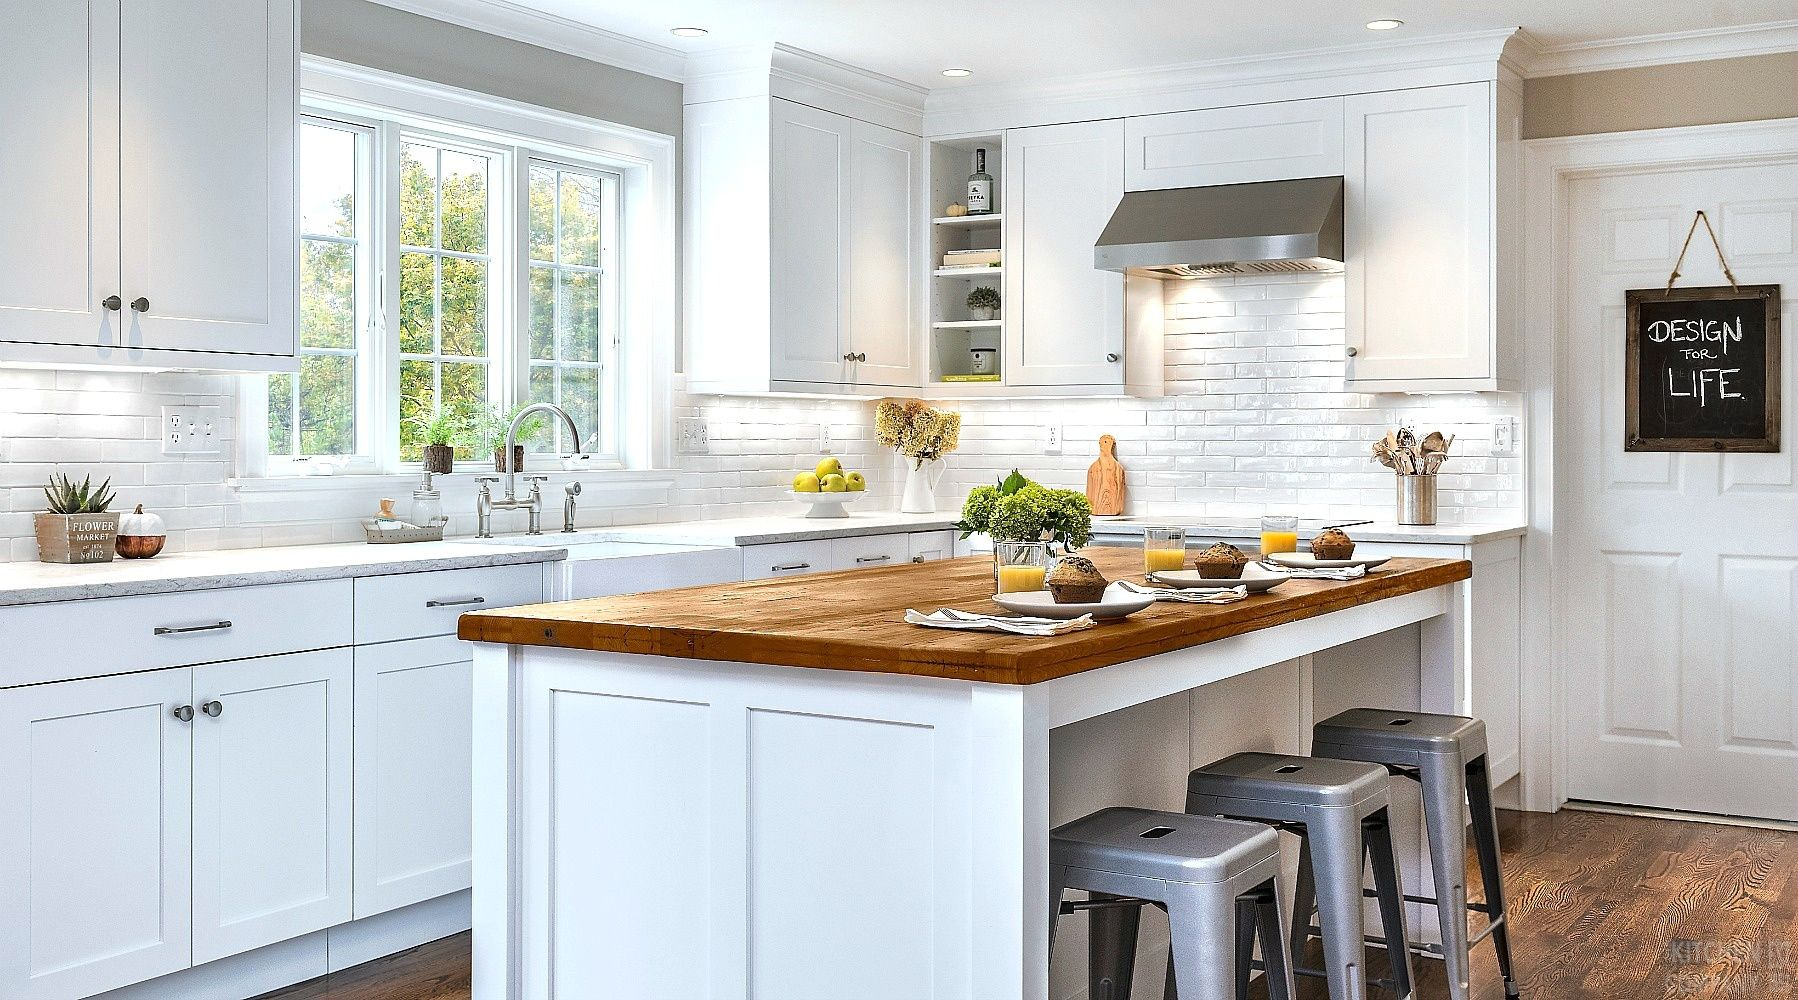 The kitchen has been completely renovated with fresh white cabinets - Fresh Farmhouse Kitchen Renovation Cabinetry Woodmode Brookhaven With Bright White Finish Island Top